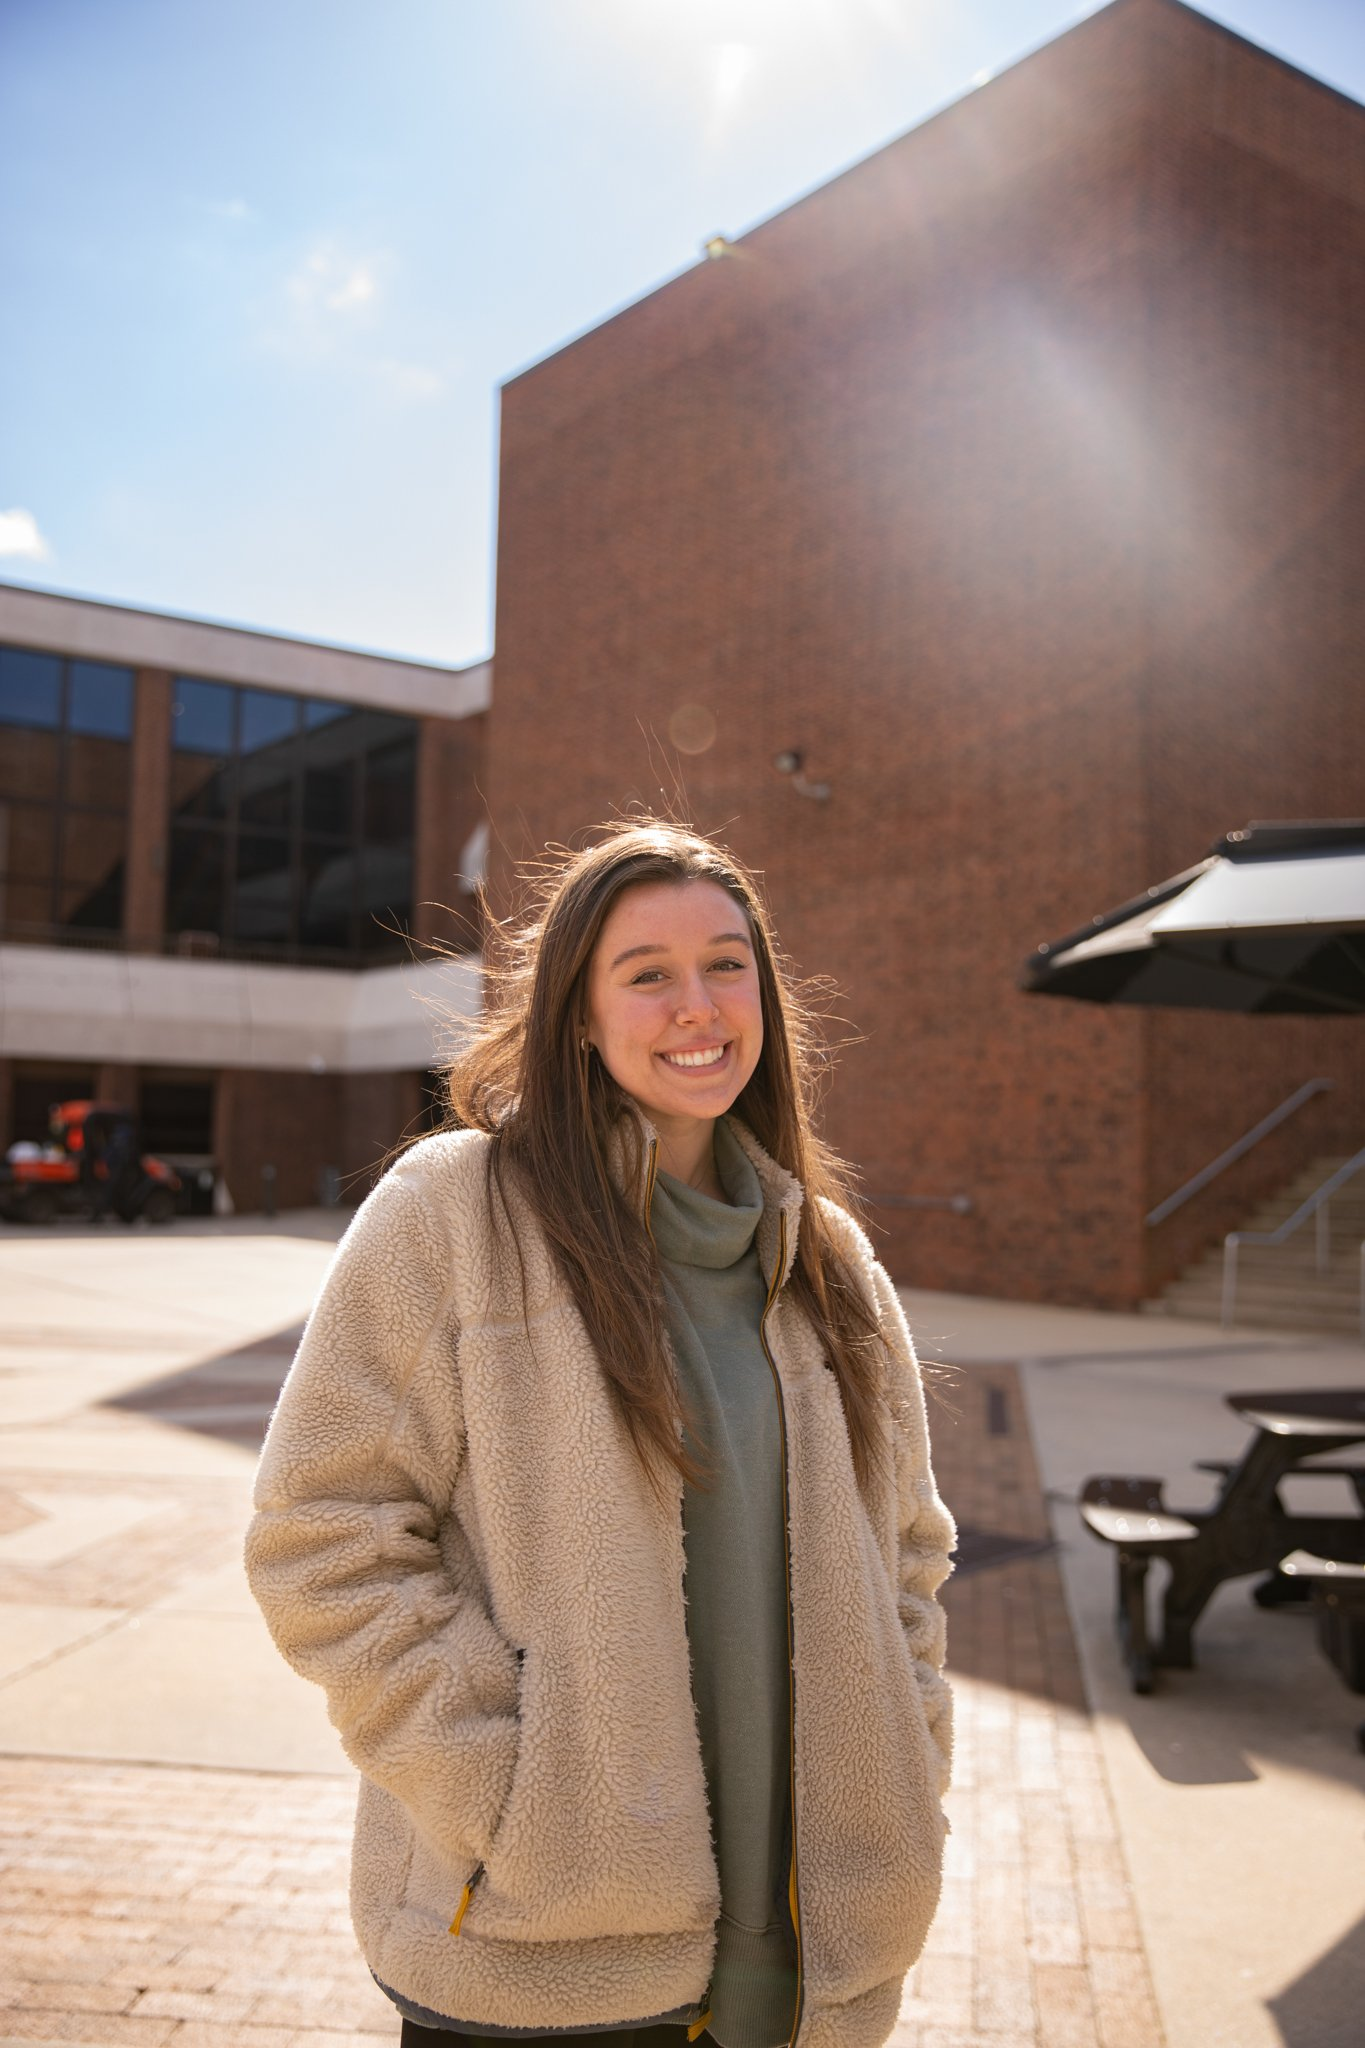 Roxy Urso poses for a photo outside of the Student Center.